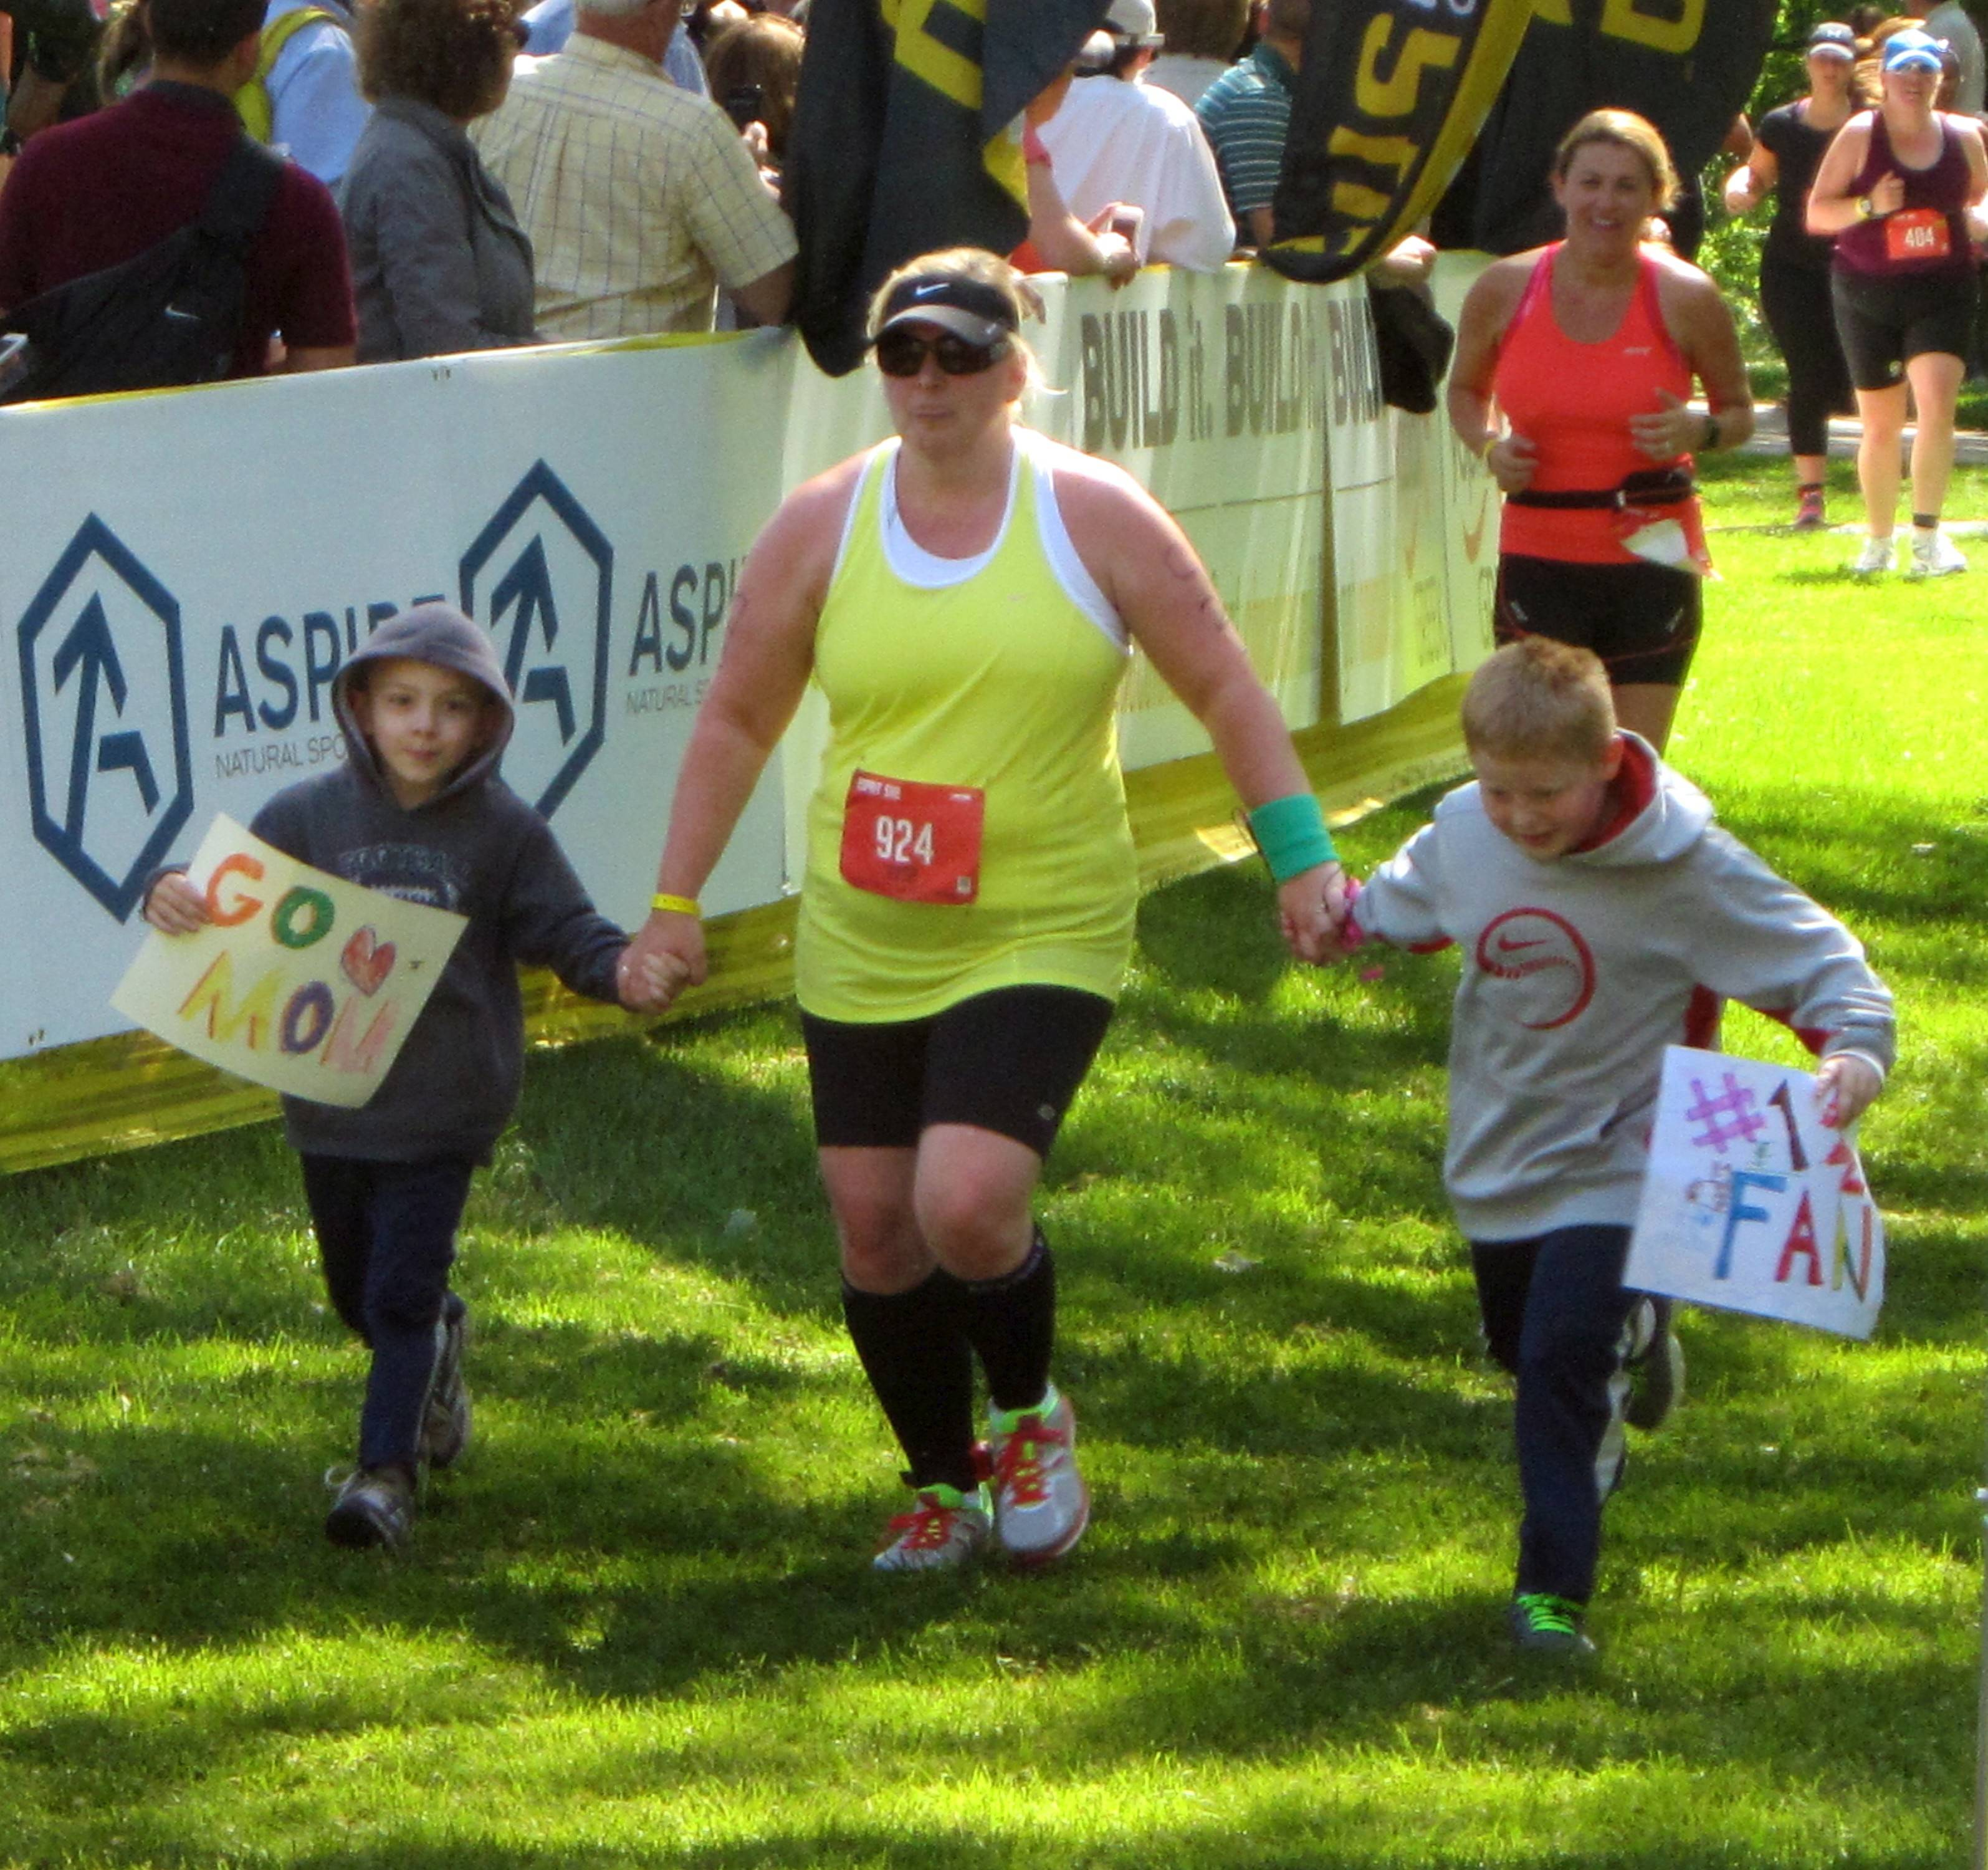 One triathlon participant brings her children with her as she crosses the finish line Sunday in the annual Esprit de She Triathlon in Naperville. The women-only triathlon included more than 1,500 athletes.